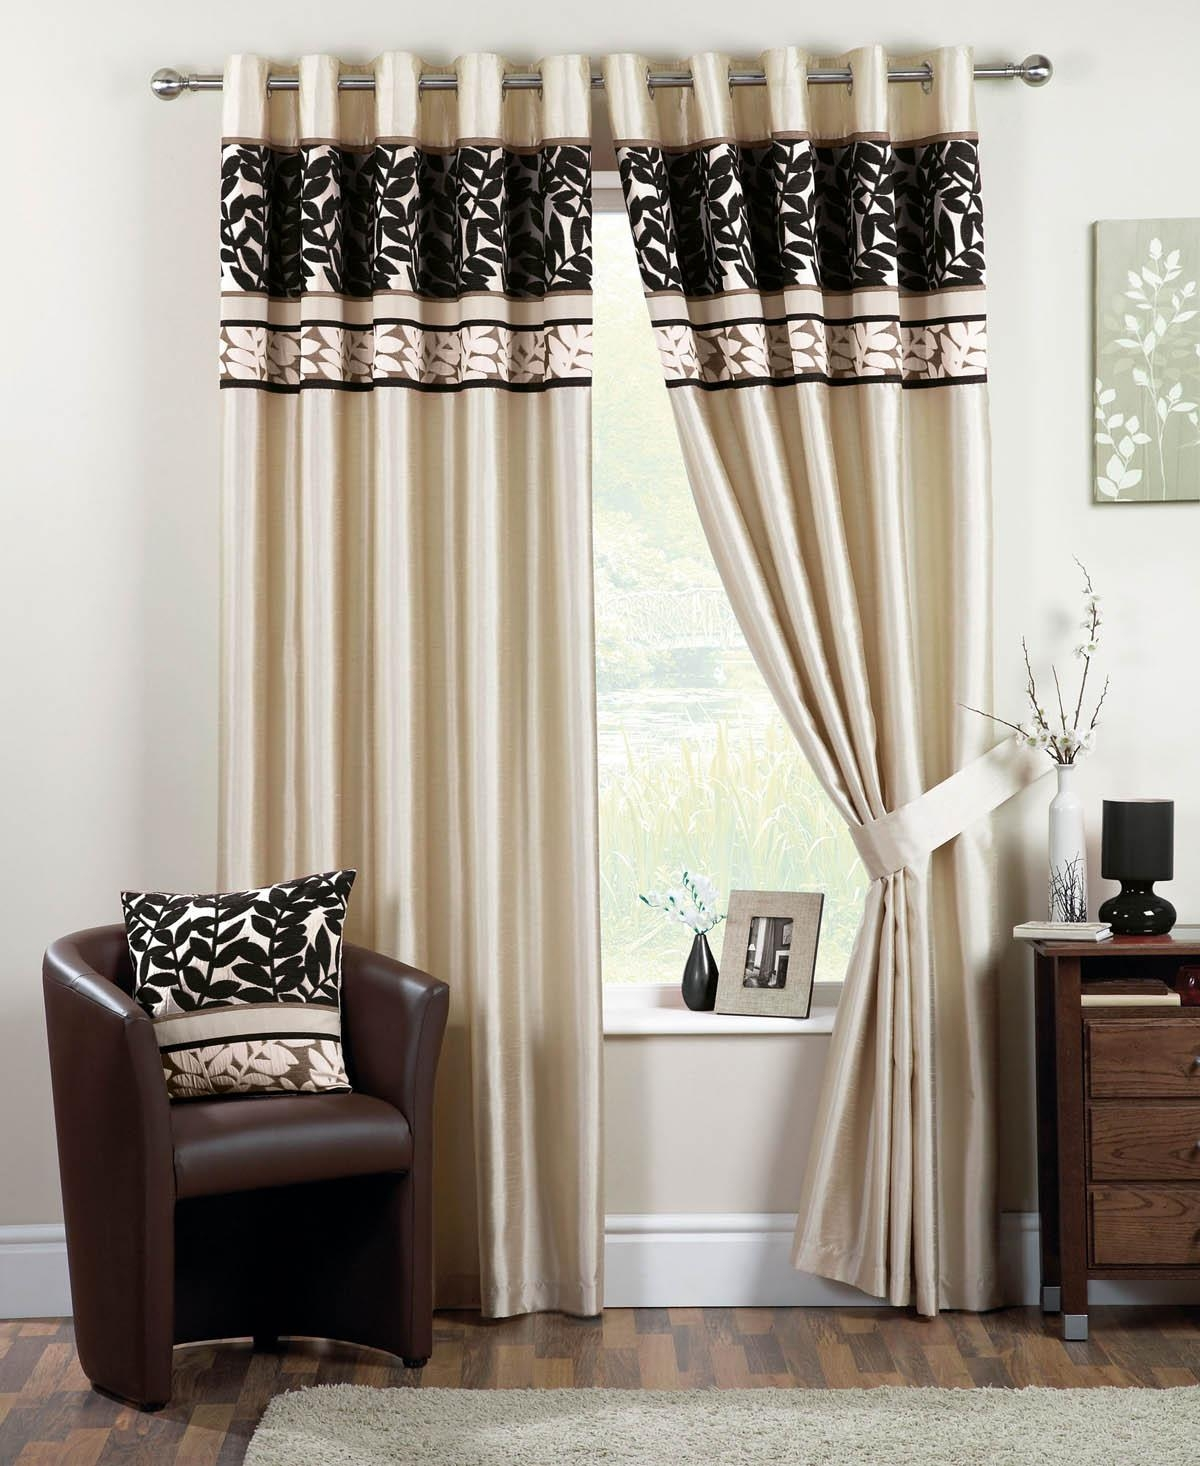 Black And Brown Curtains Home Design Ideas Gigforest Pertaining To Black And Brown Curtains (Photo 1 of 15)